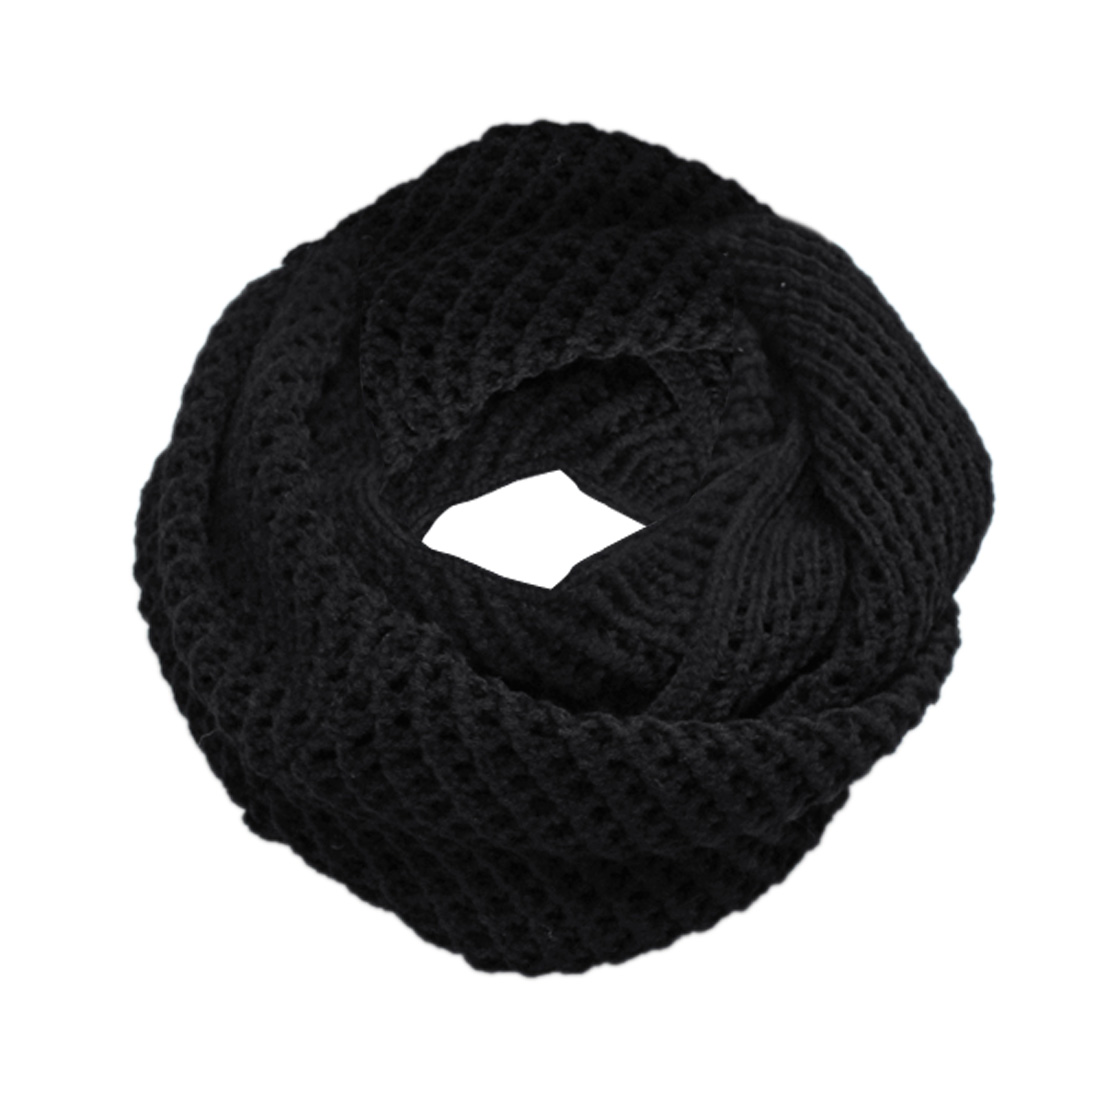 Winter Black New Fashion Easy Matching Circle Scarf For Women Men